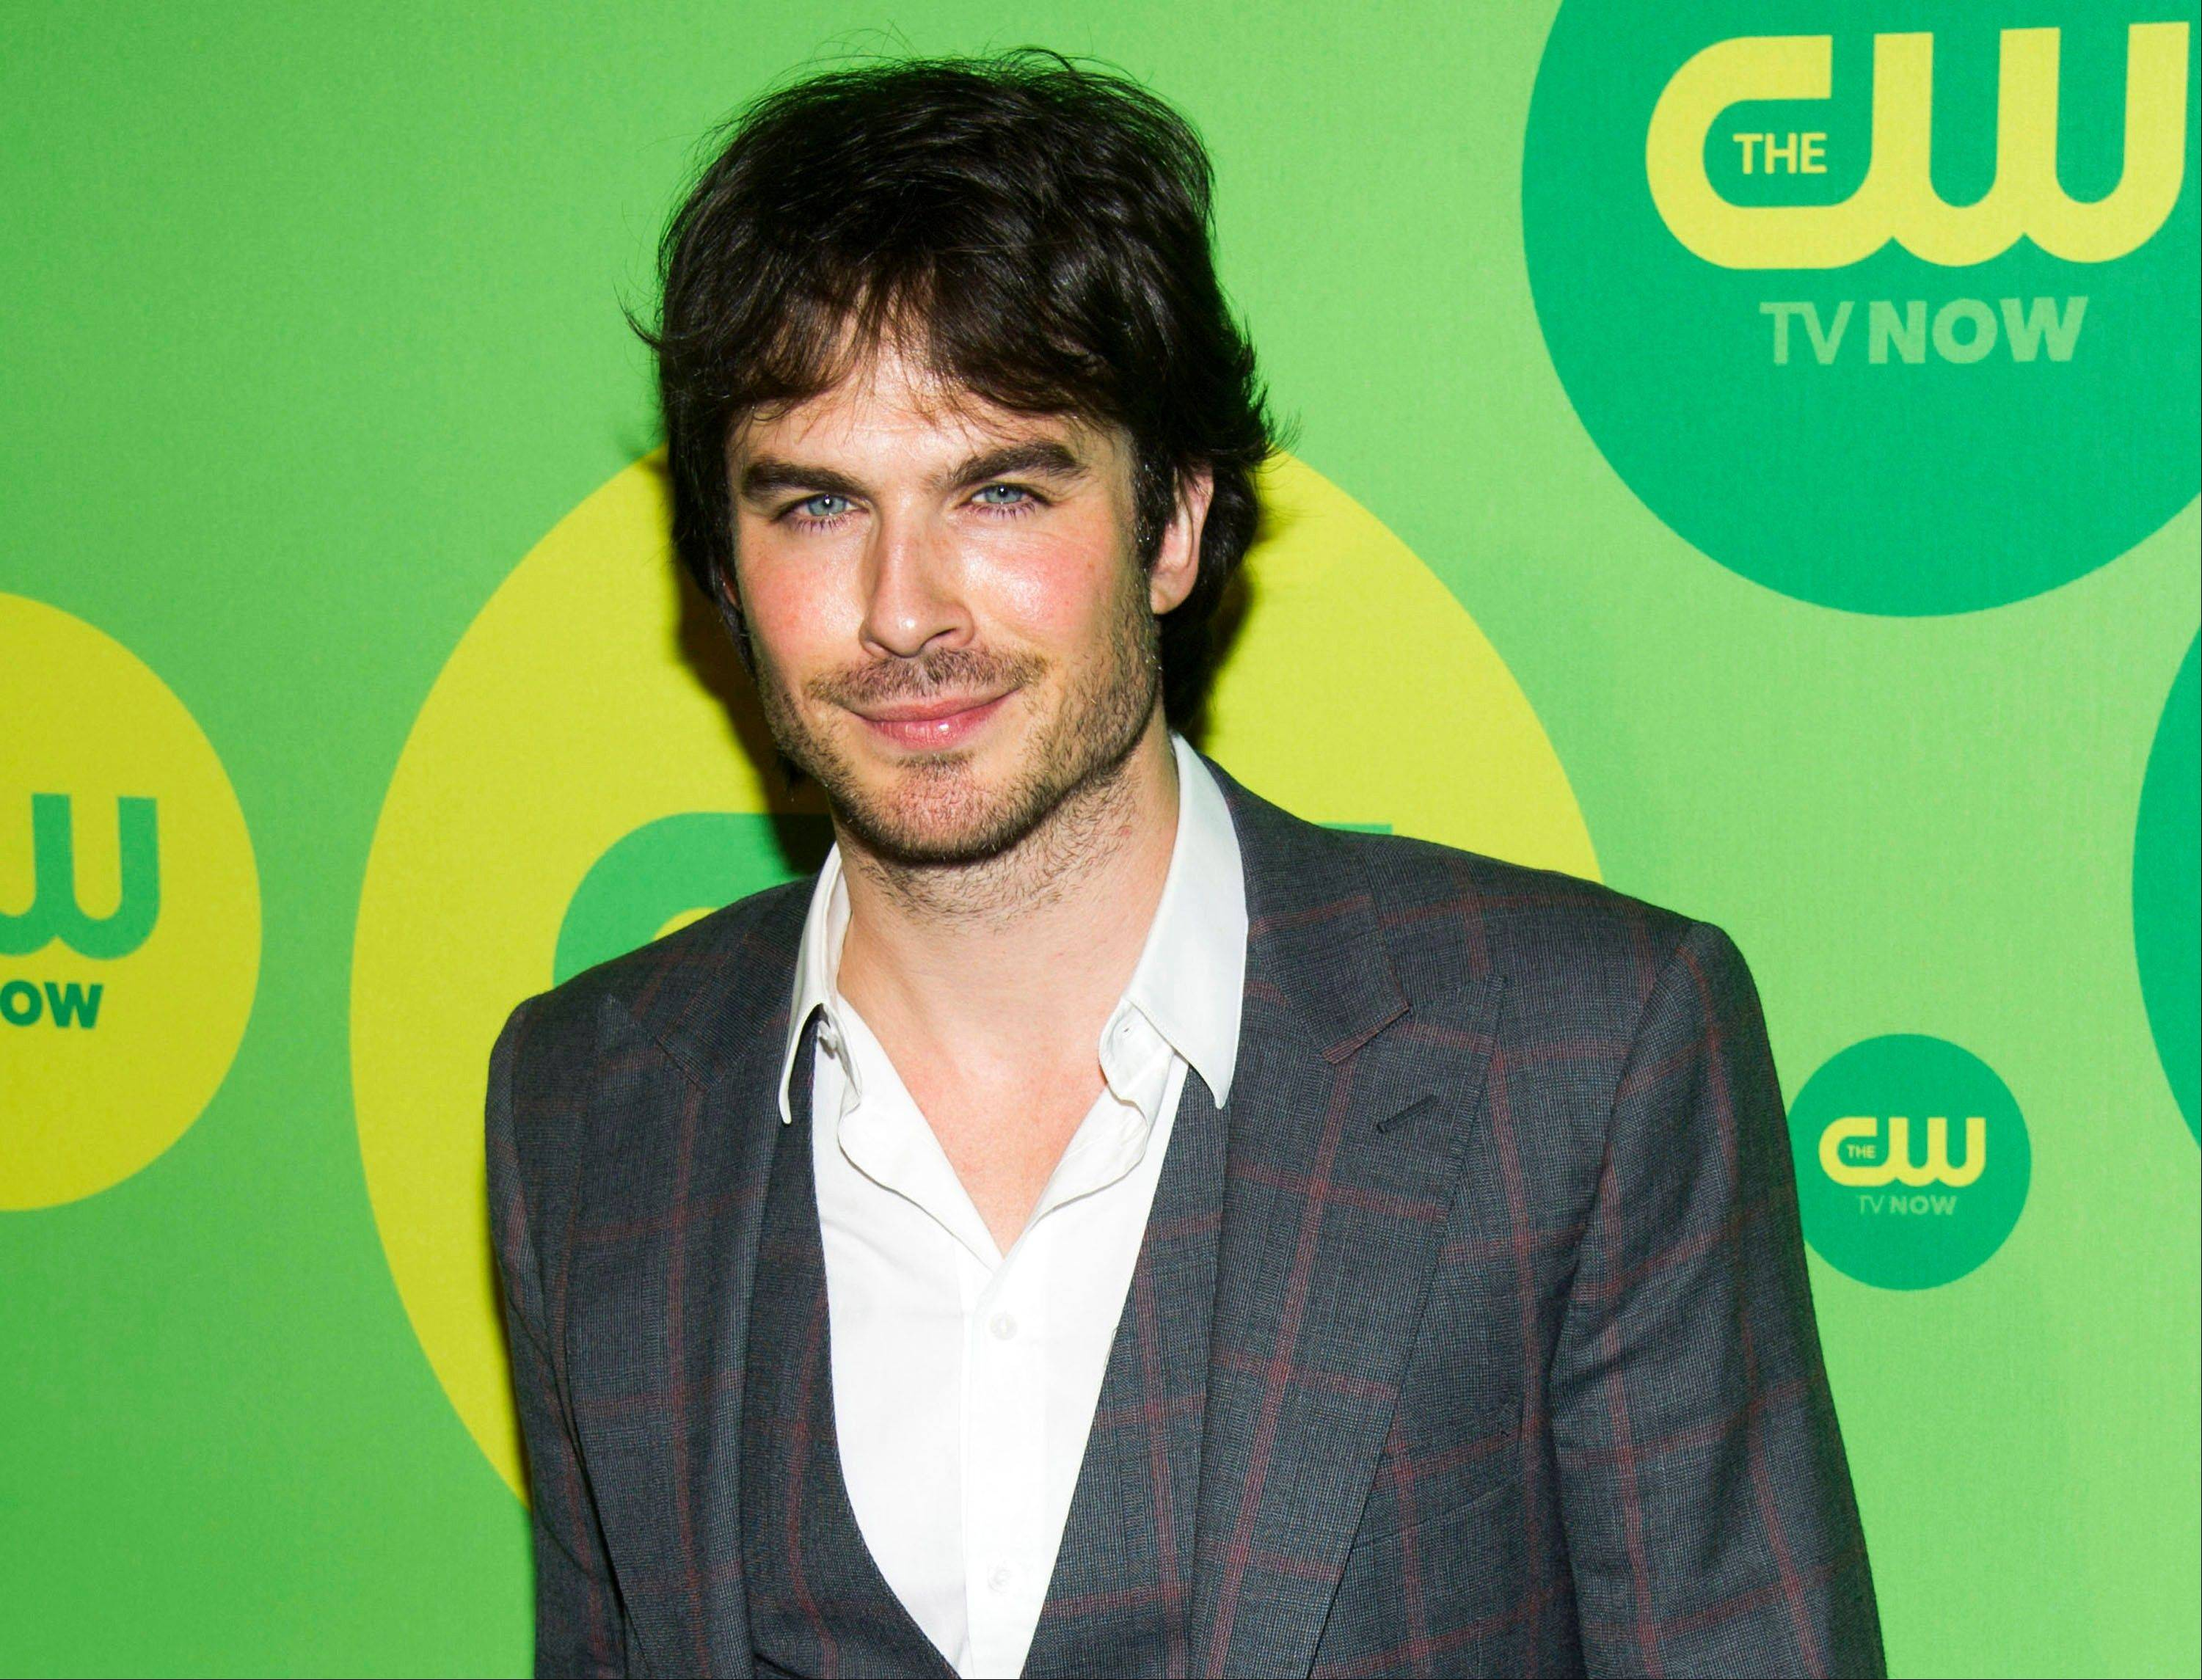 Ian Somerhalder, who plays Damon on �The Vampire Diaries,� says that he understands how passionate fans are about the show.